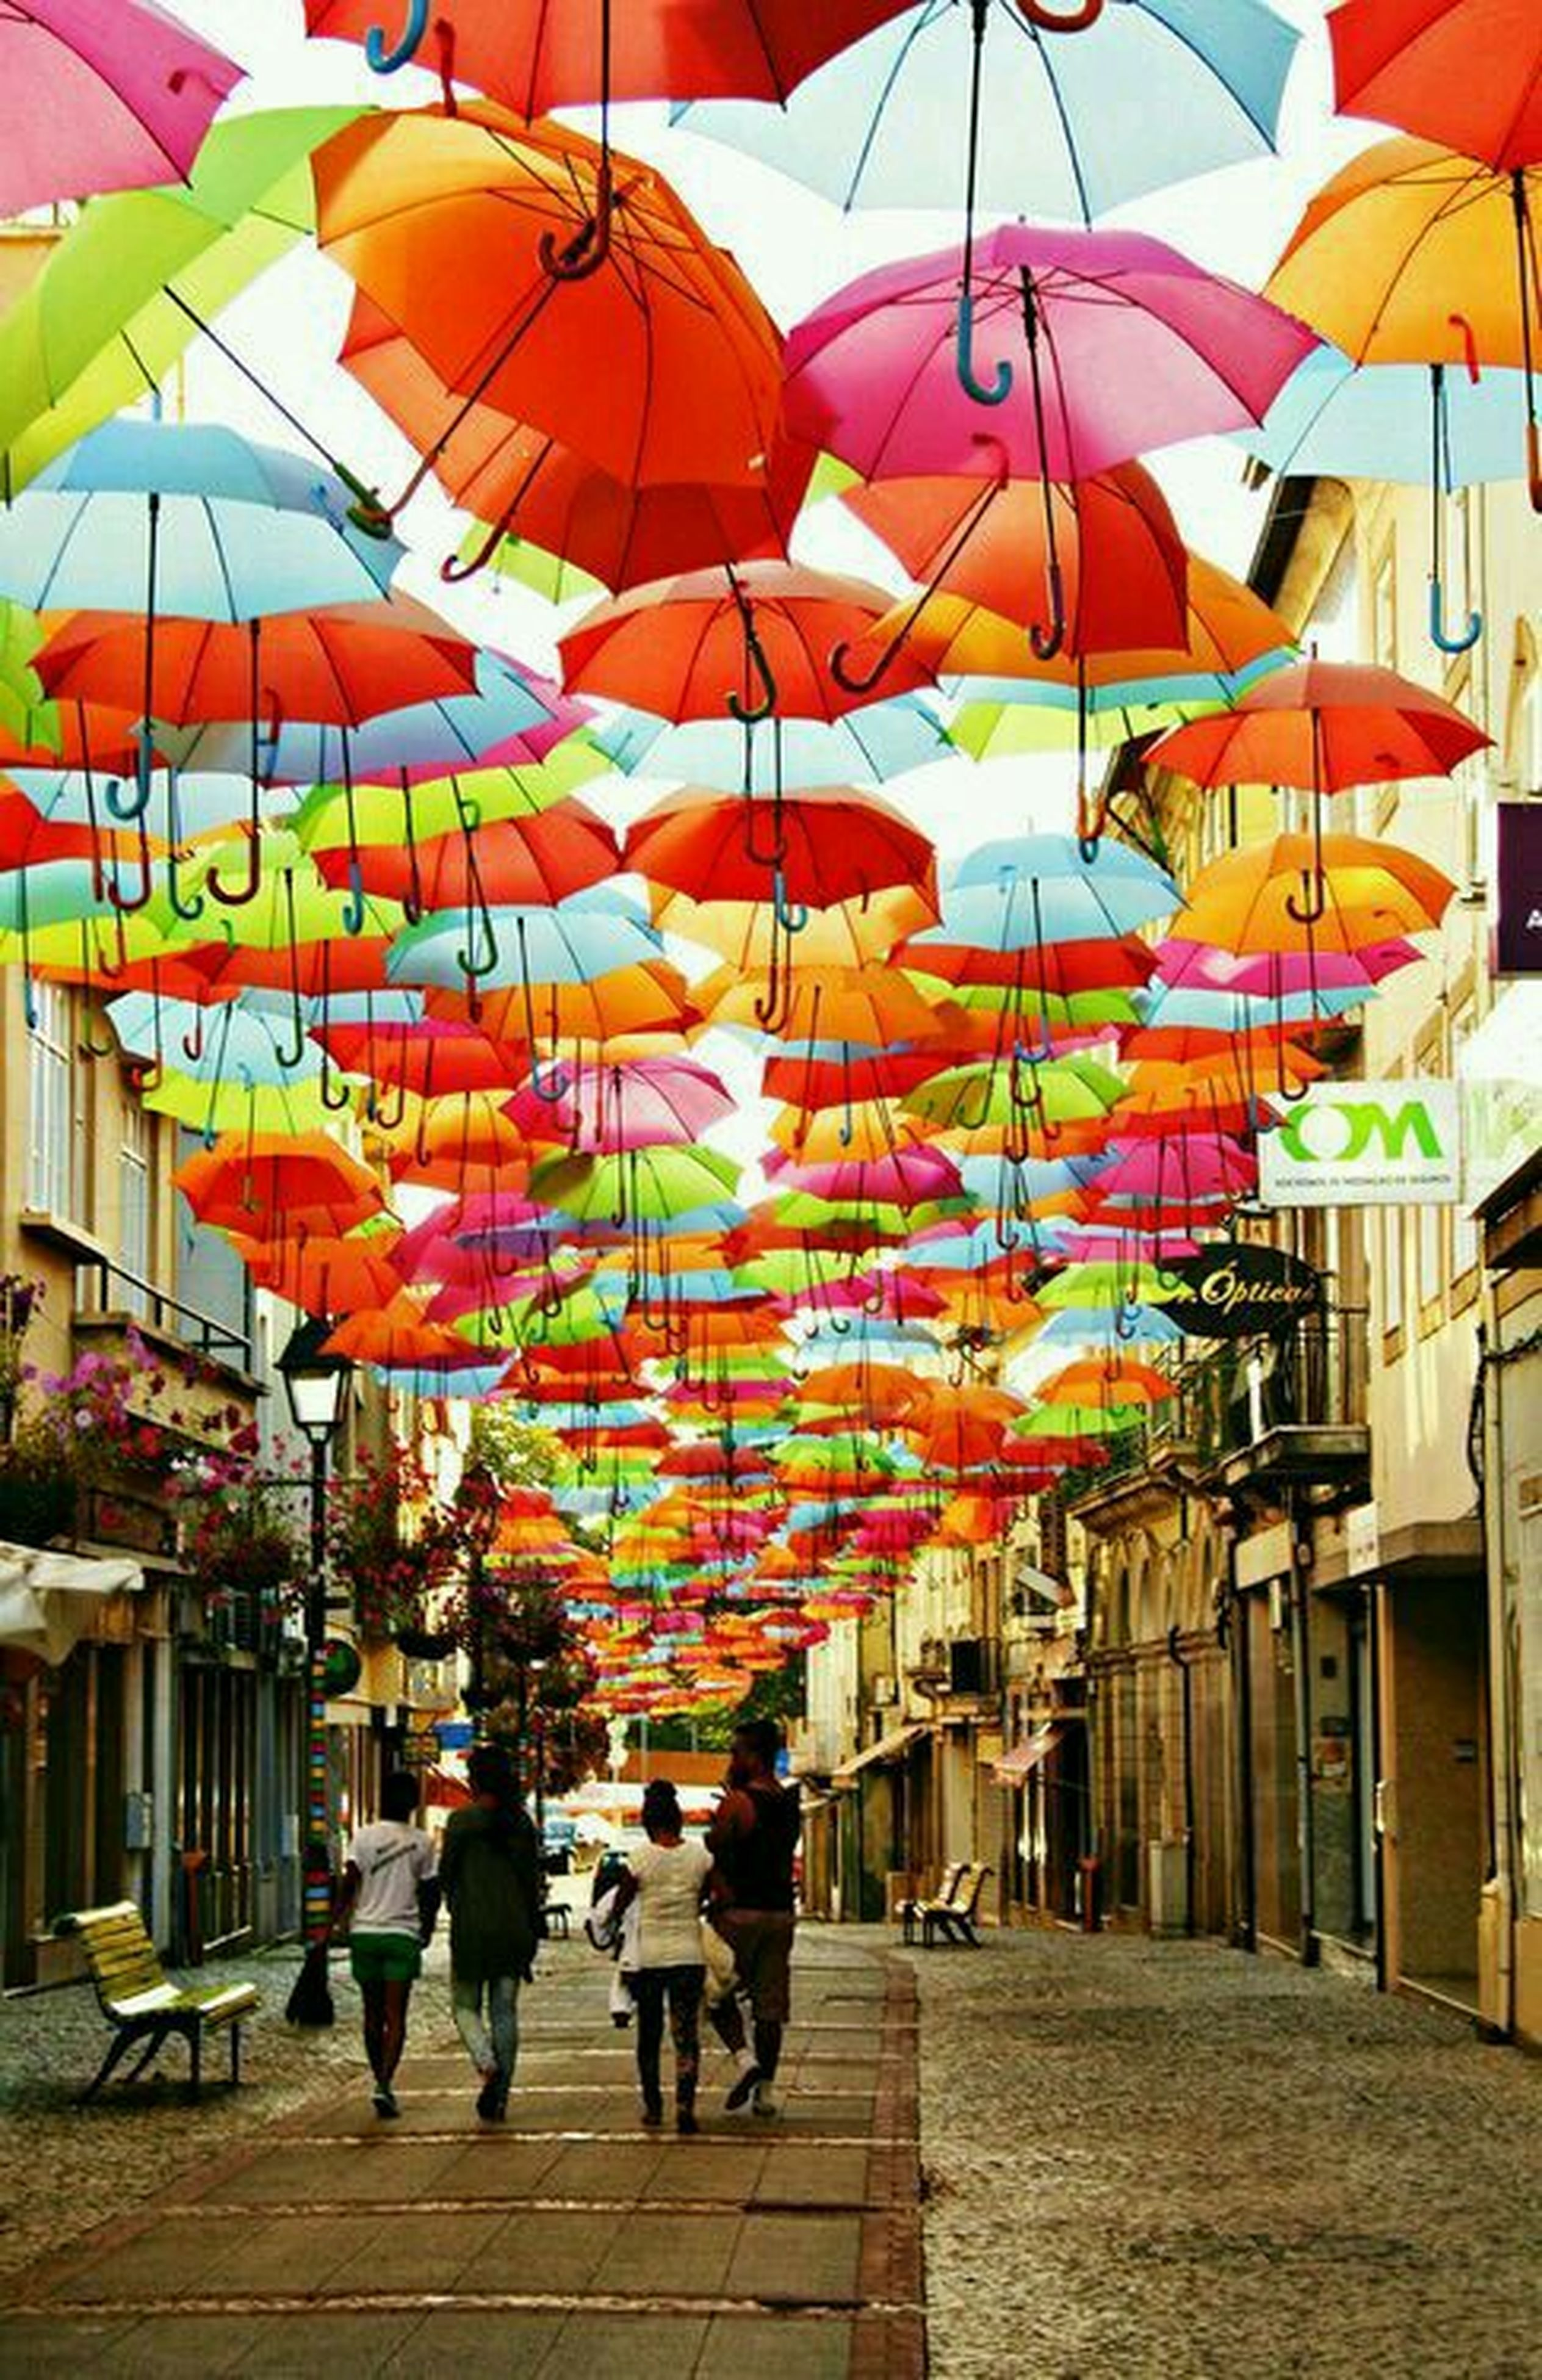 large group of people, multi colored, men, person, umbrella, lifestyles, leisure activity, celebration, architecture, building exterior, traditional festival, built structure, cultures, decoration, tradition, walking, hanging, balloon, colorful